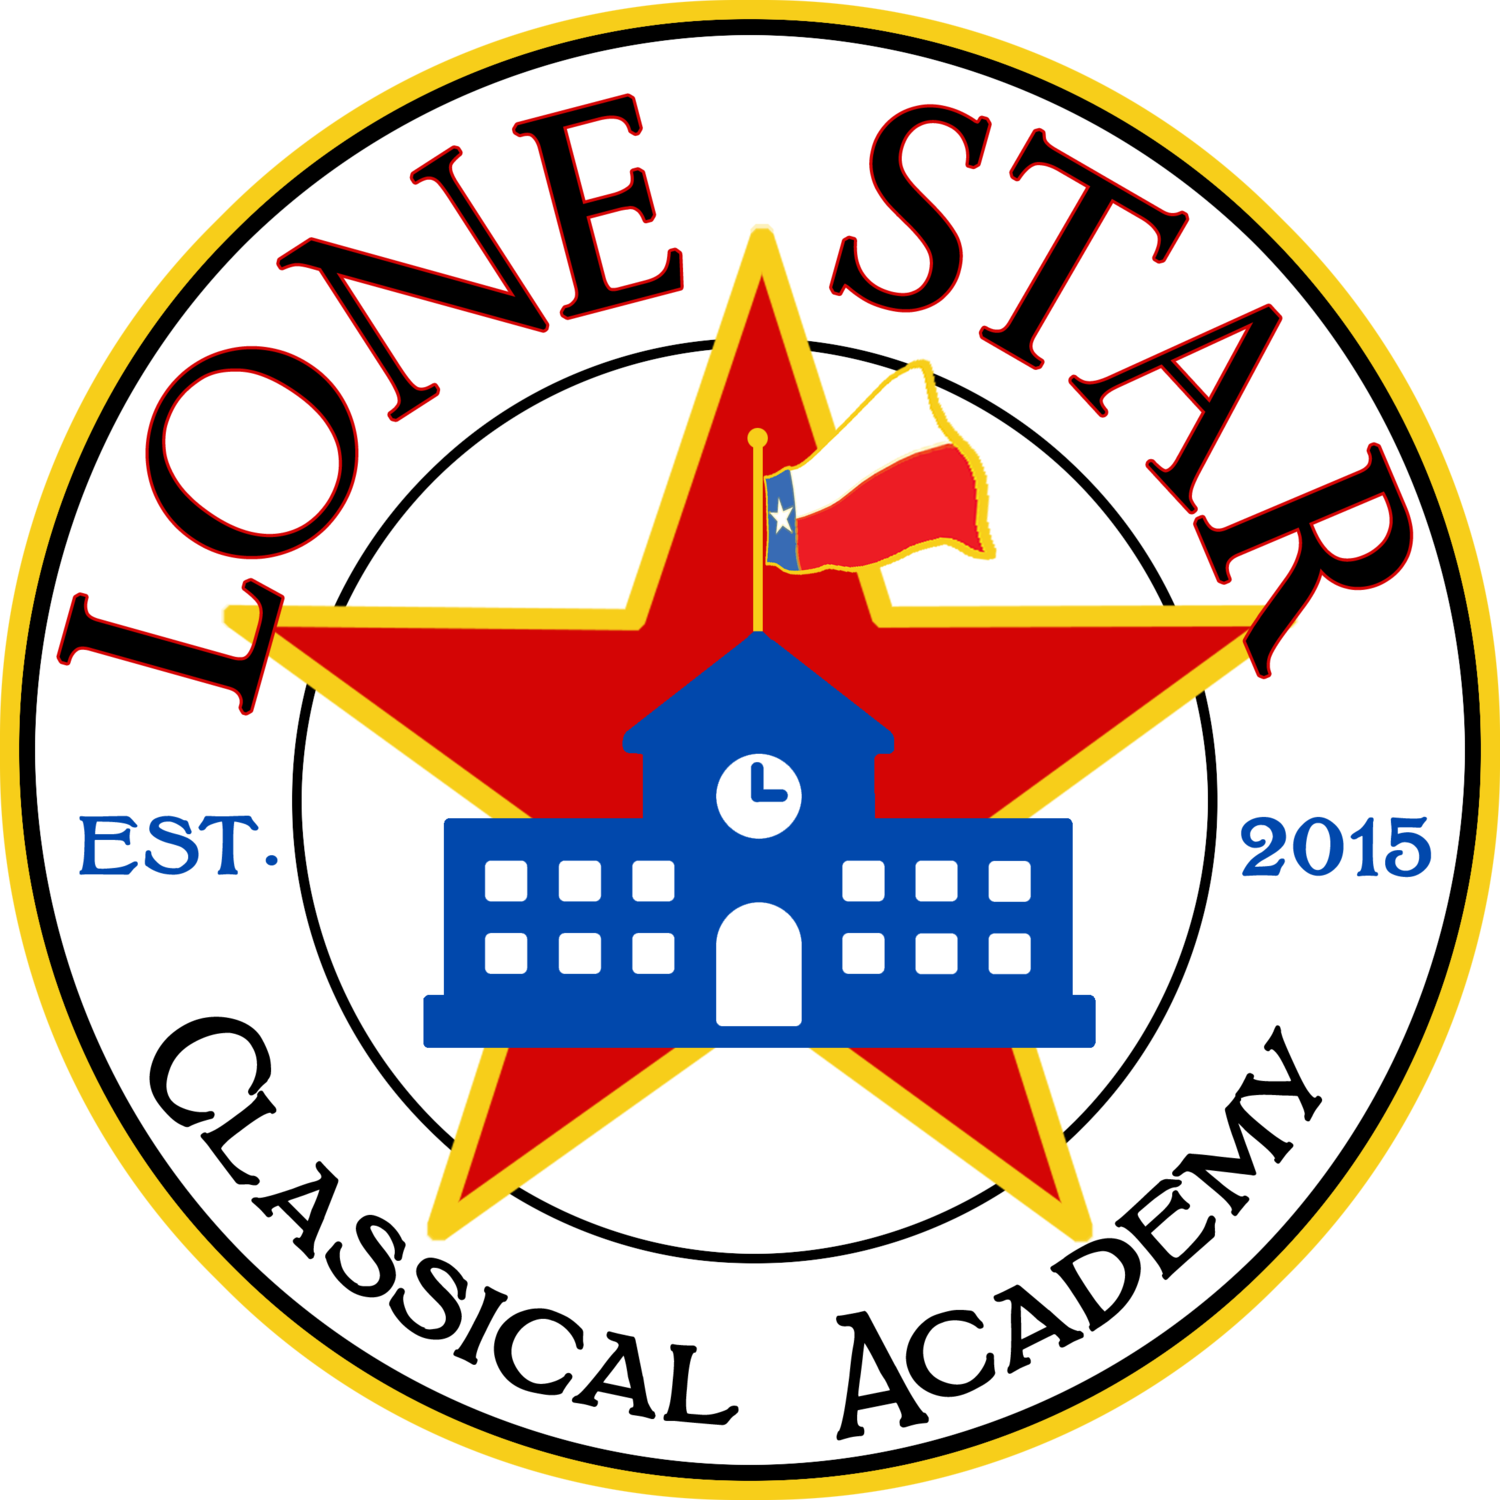 Honest clipart civic virtue. Lone star classical academy